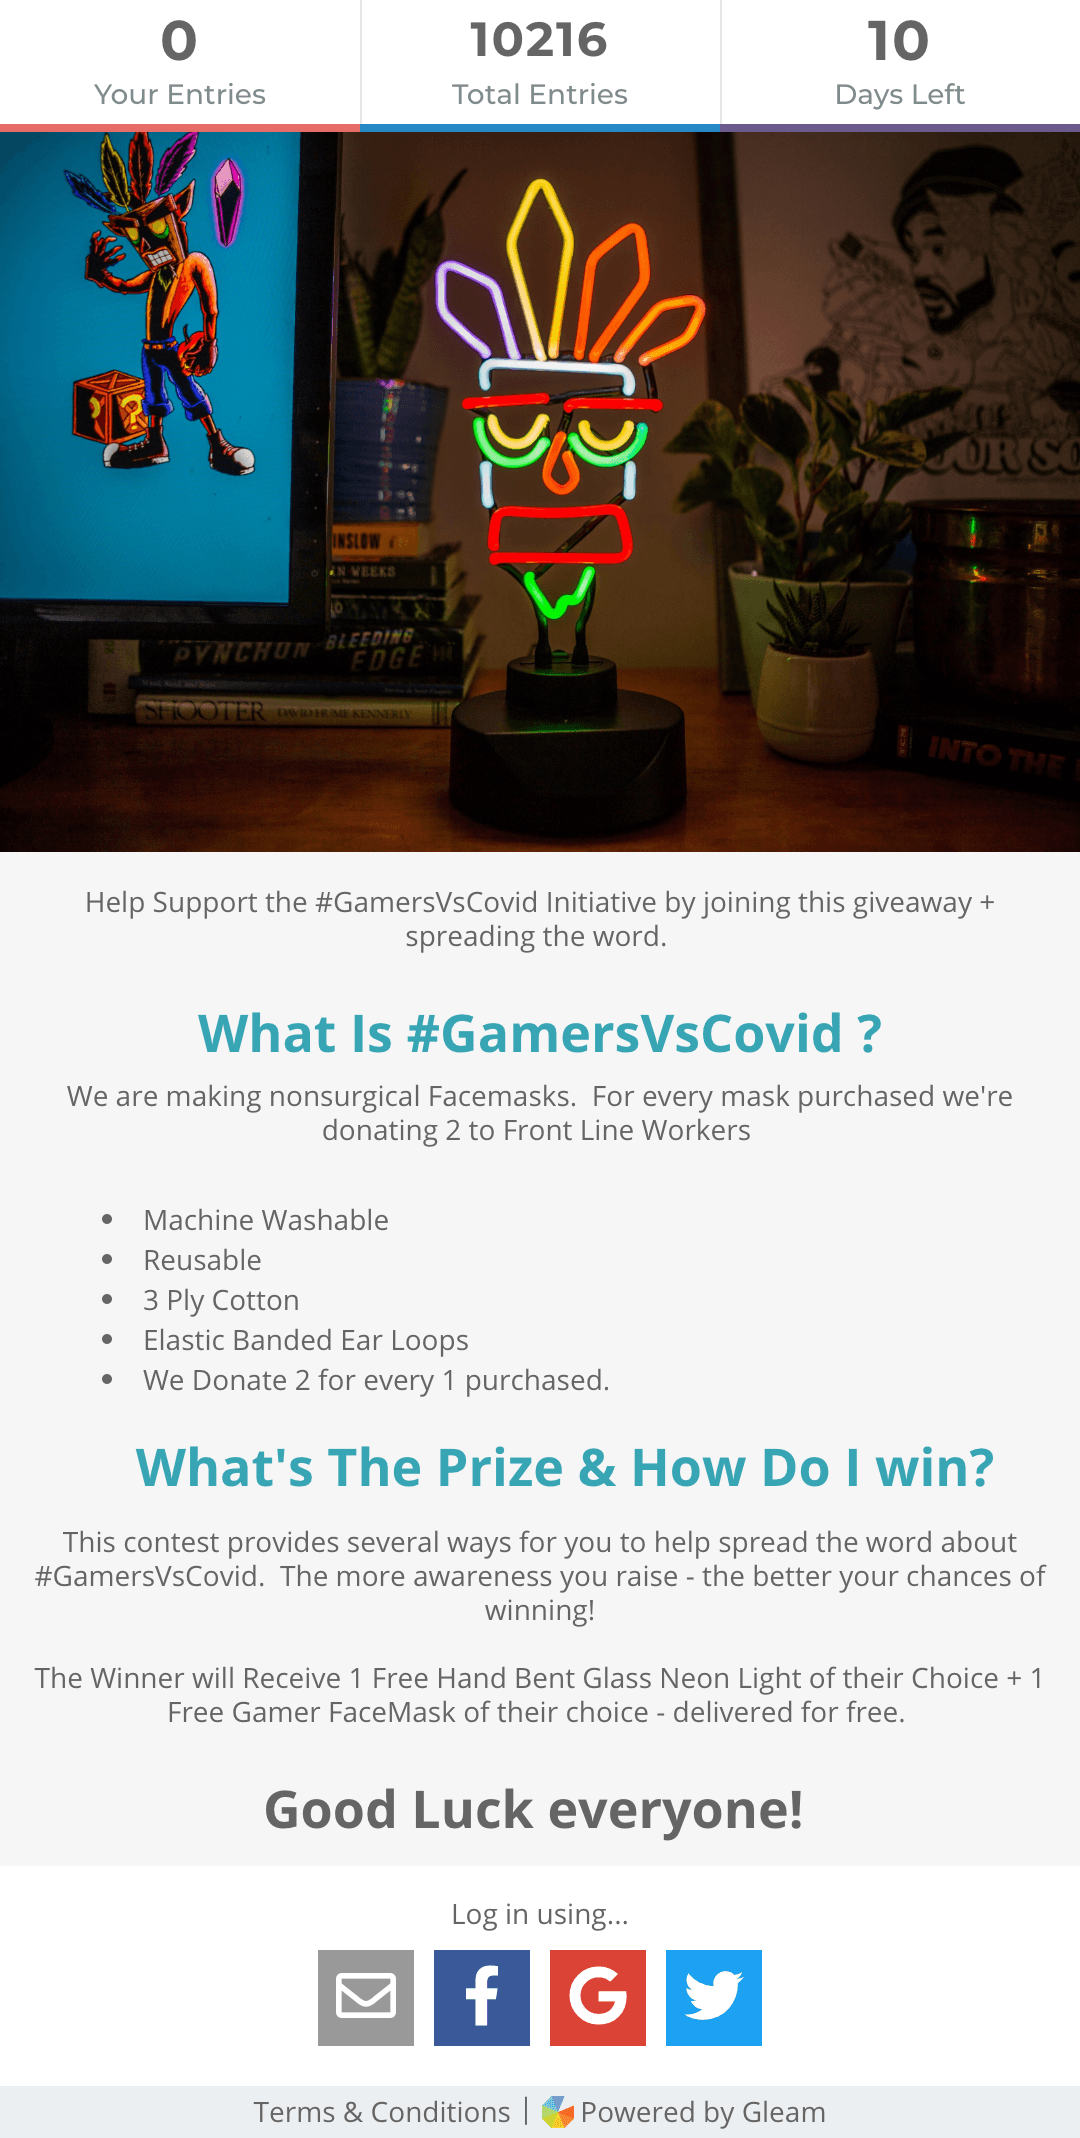 Fanfit Gaming's #GamersvsCovid giveaway campaign